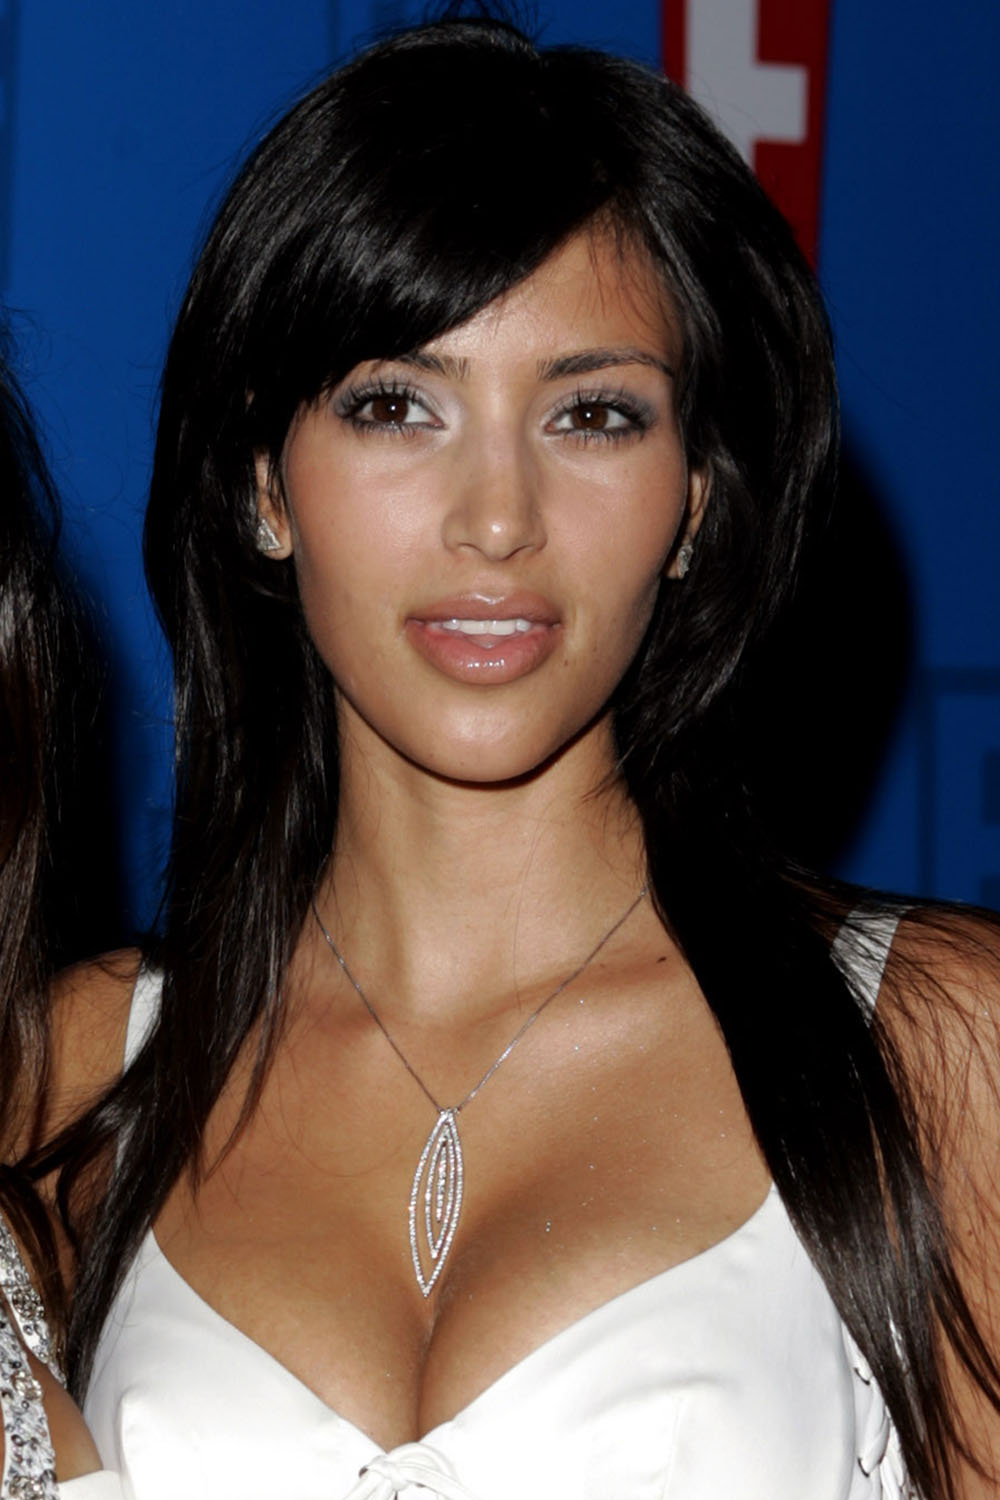 Kim Kardashian's Makeup and Hairstyles - Pictures of Kim ... Kim Kardashian